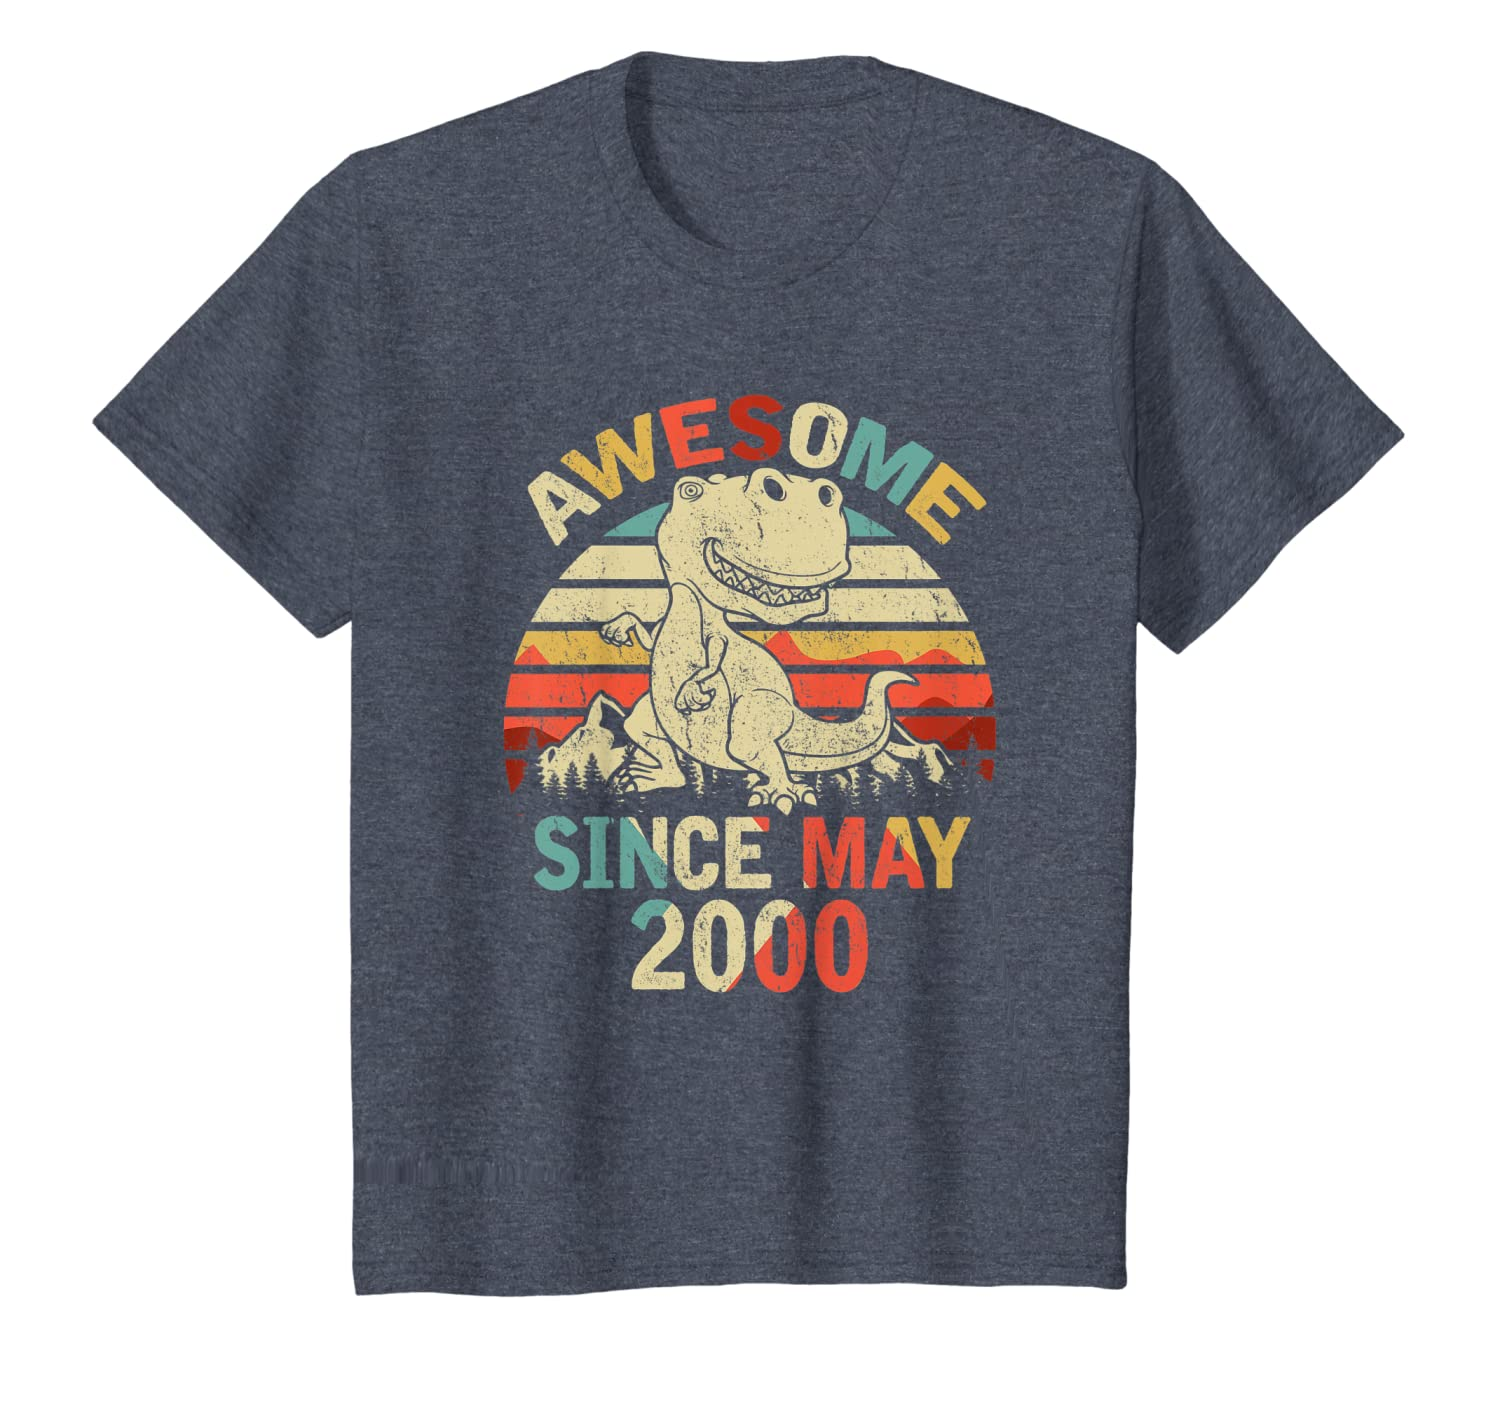 Awesome Since MAY 2000 20th Dinosaur Birthday for Boys Kid T-Shirt